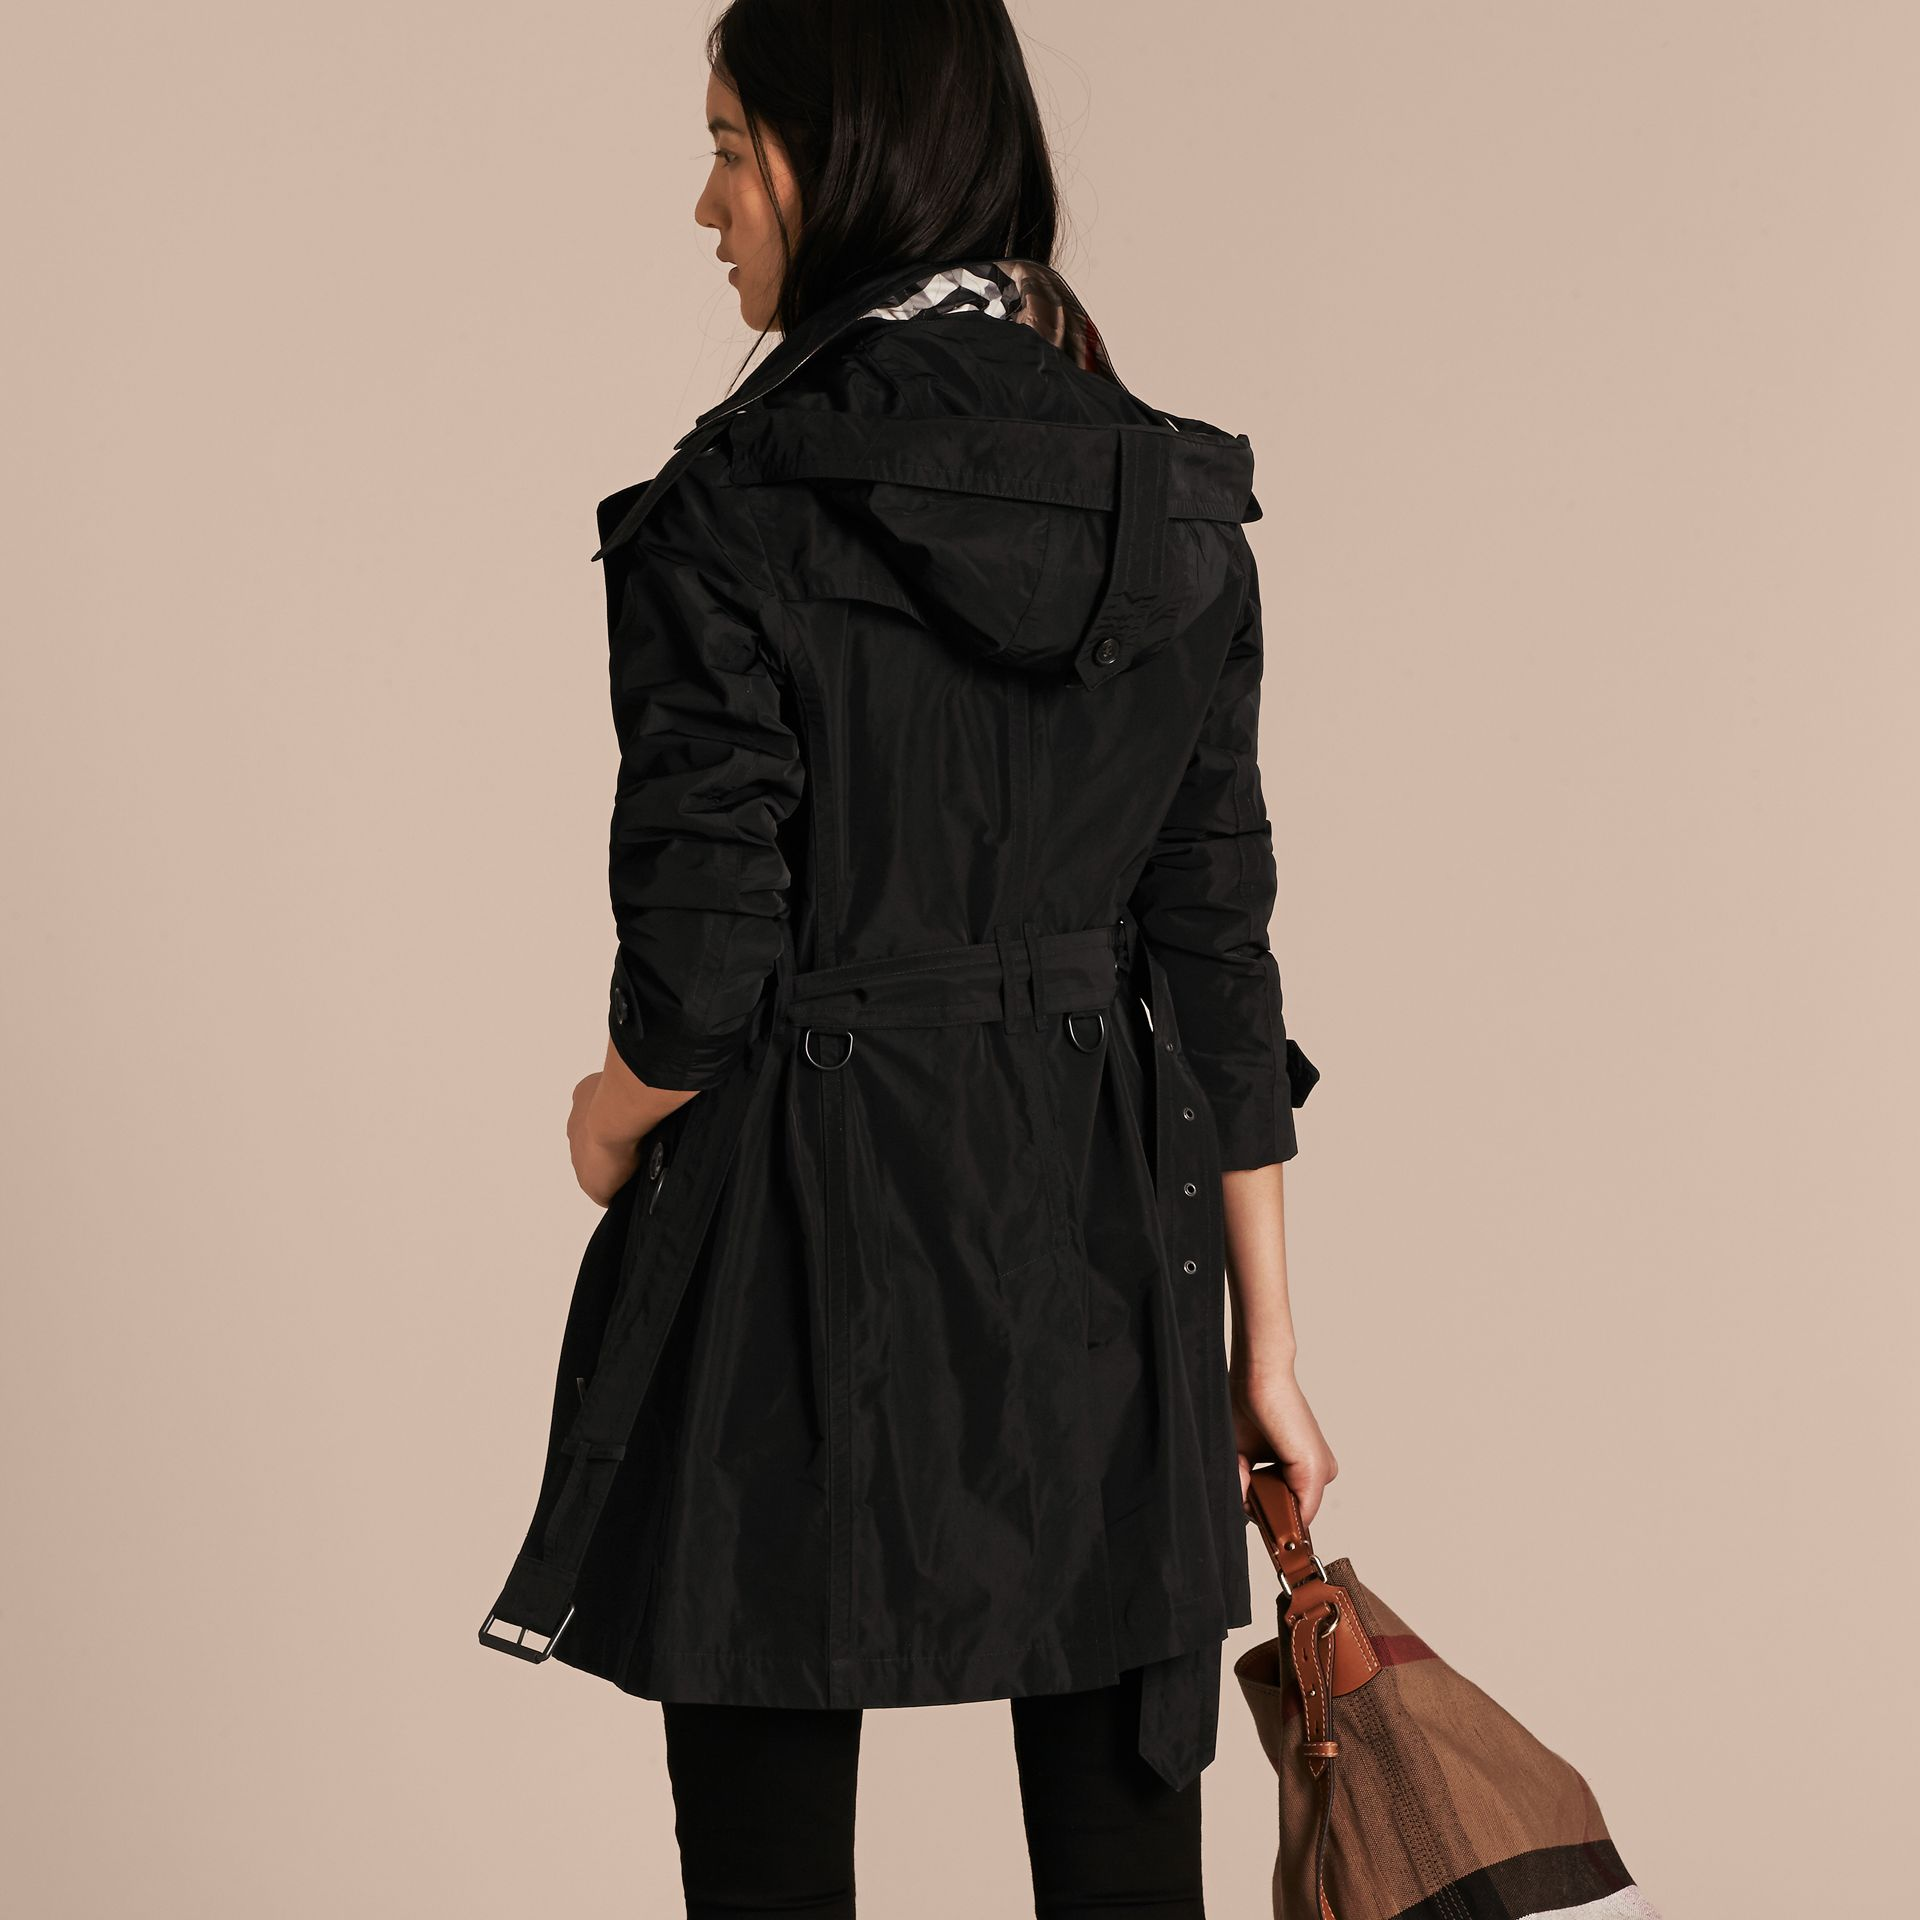 Black Taffeta Trench Coat with Detachable Hood Black - gallery image 3